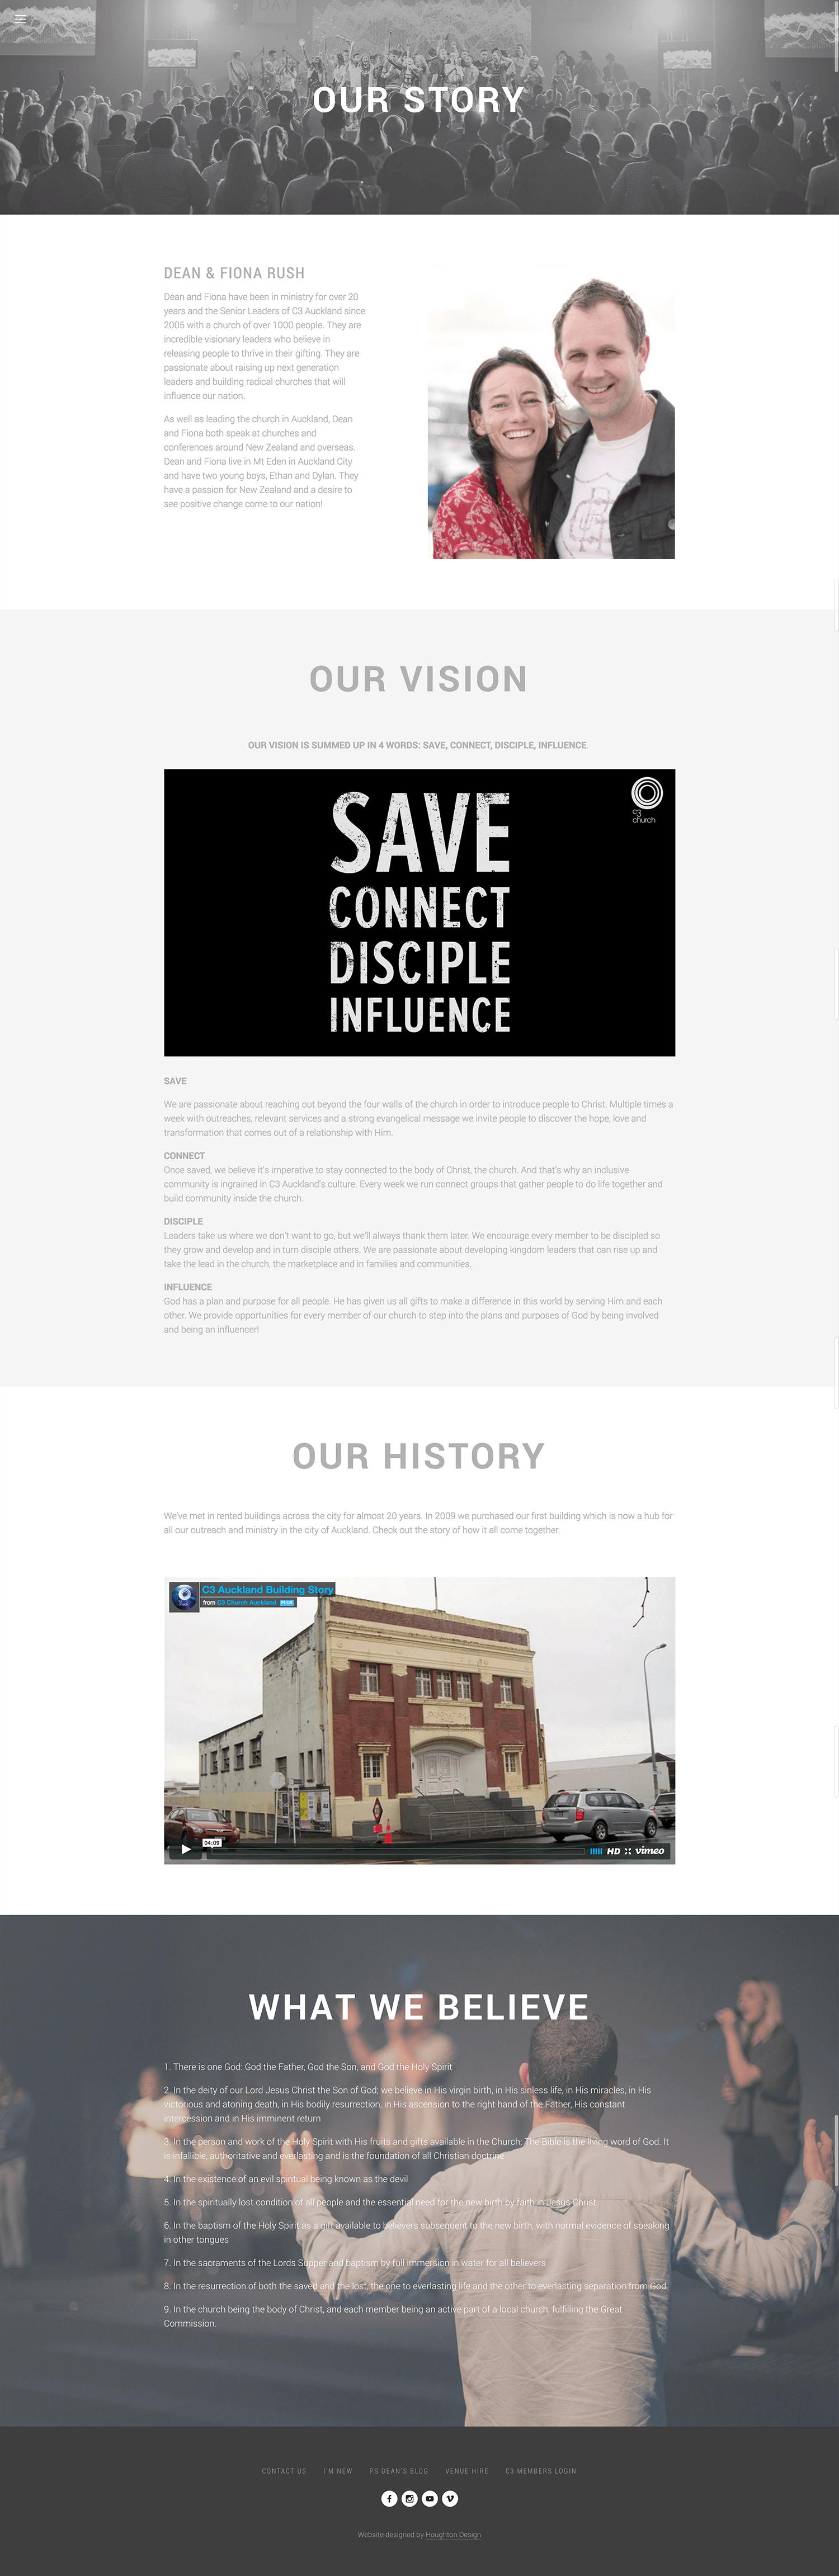 C3 Auckland - Our story